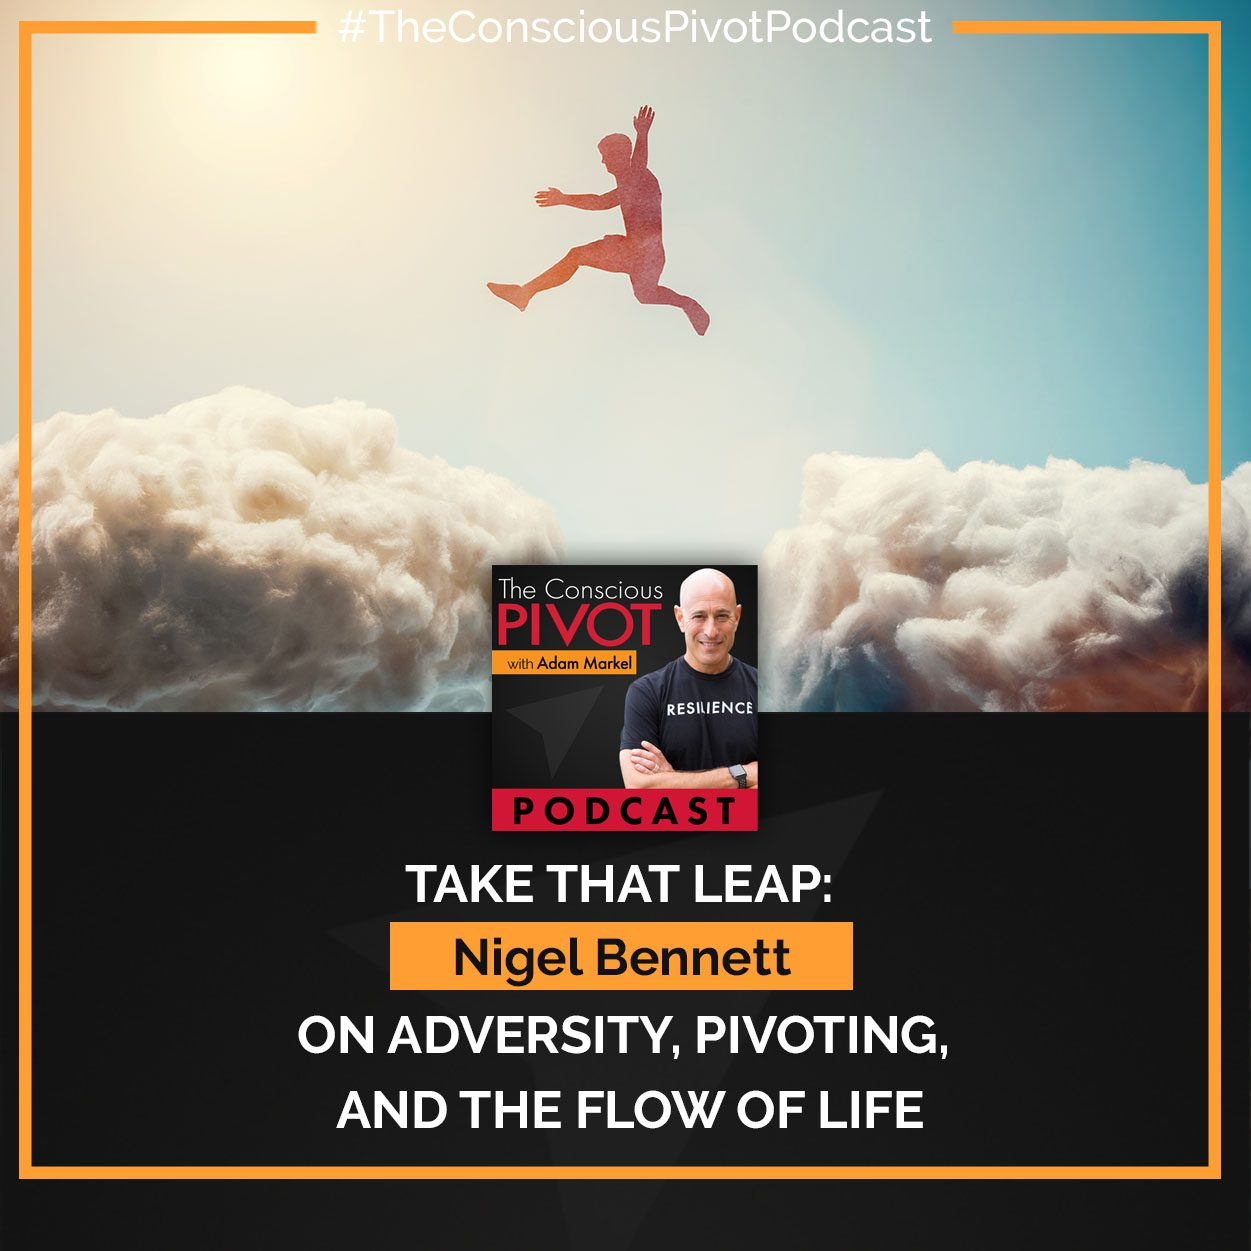 Take That Leap: Nigel Bennett On Adversity, Pivoting, And The Flow Of Life